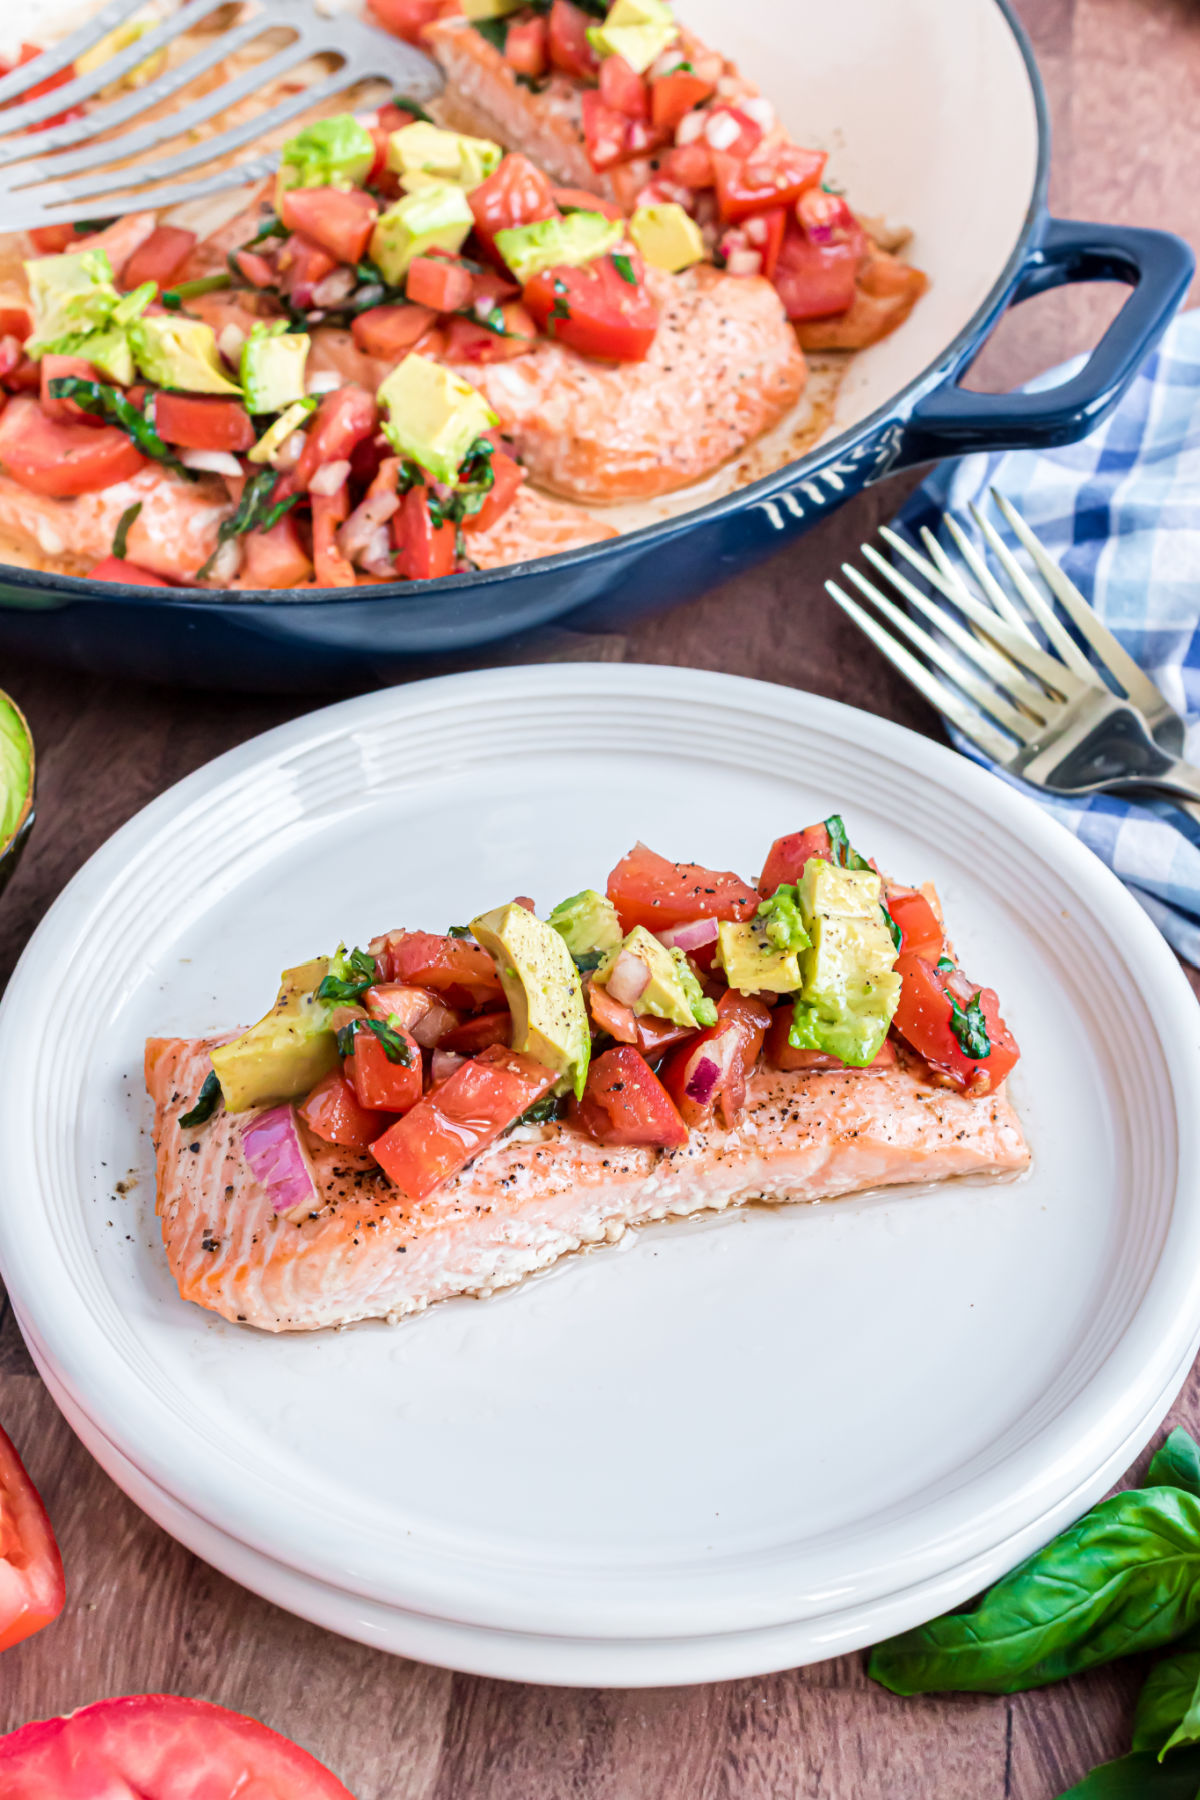 Salmon filet topped with bruschetta and avocado on a white dinner plate.